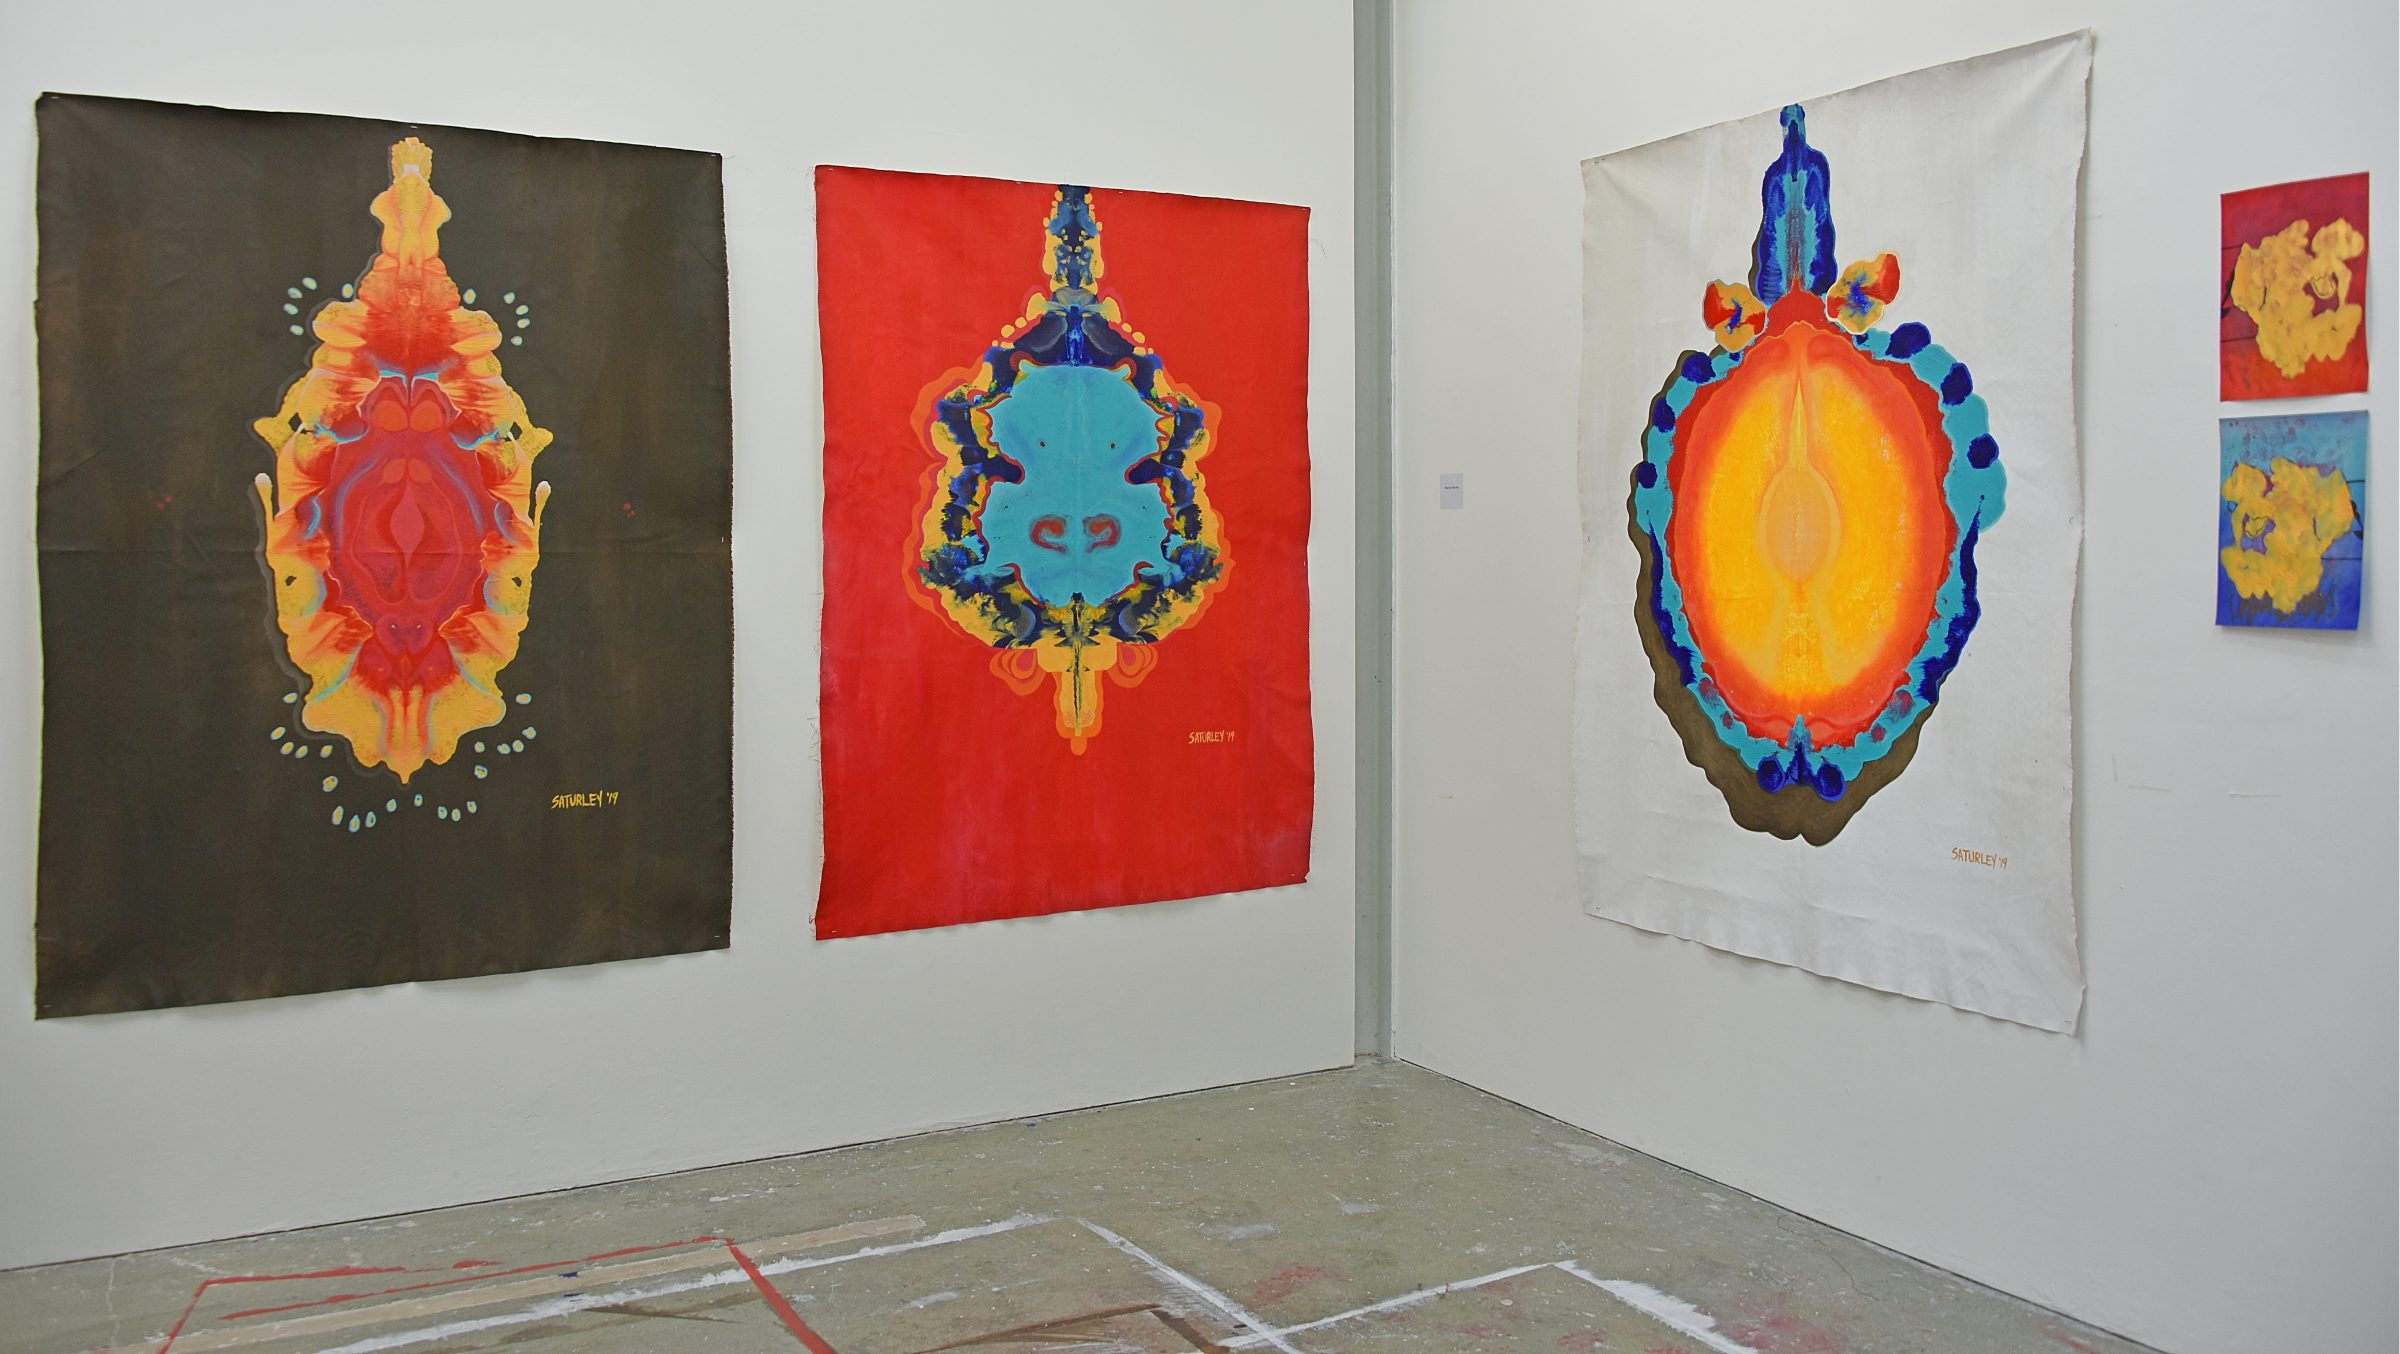 paintings by Brandy Saturley at Royal College of Art Sackler studios